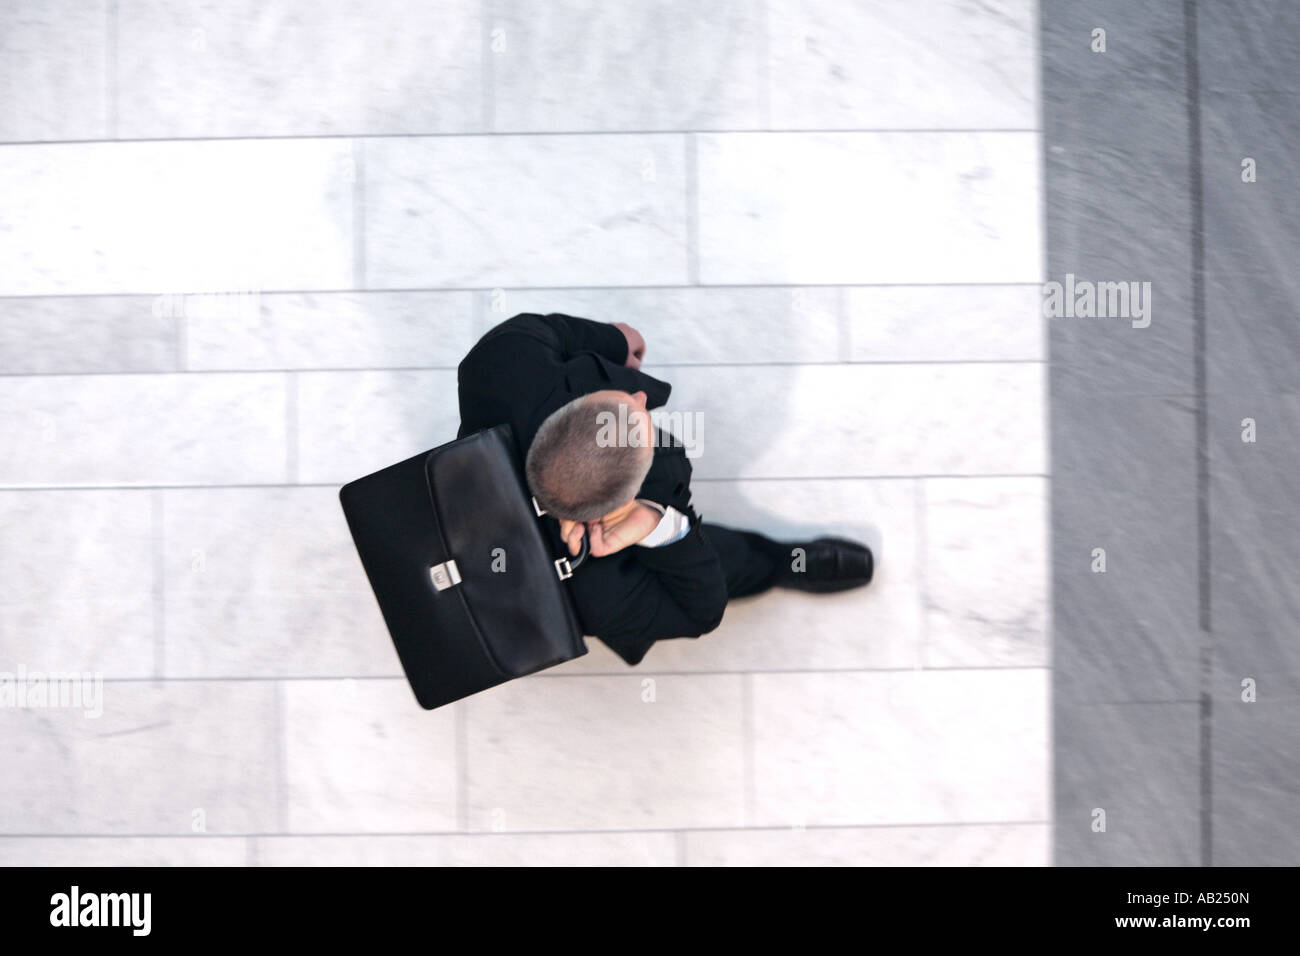 manager in a suit walking with briefcase from above Manager im Anzug mit Aktentasche - Stock Image